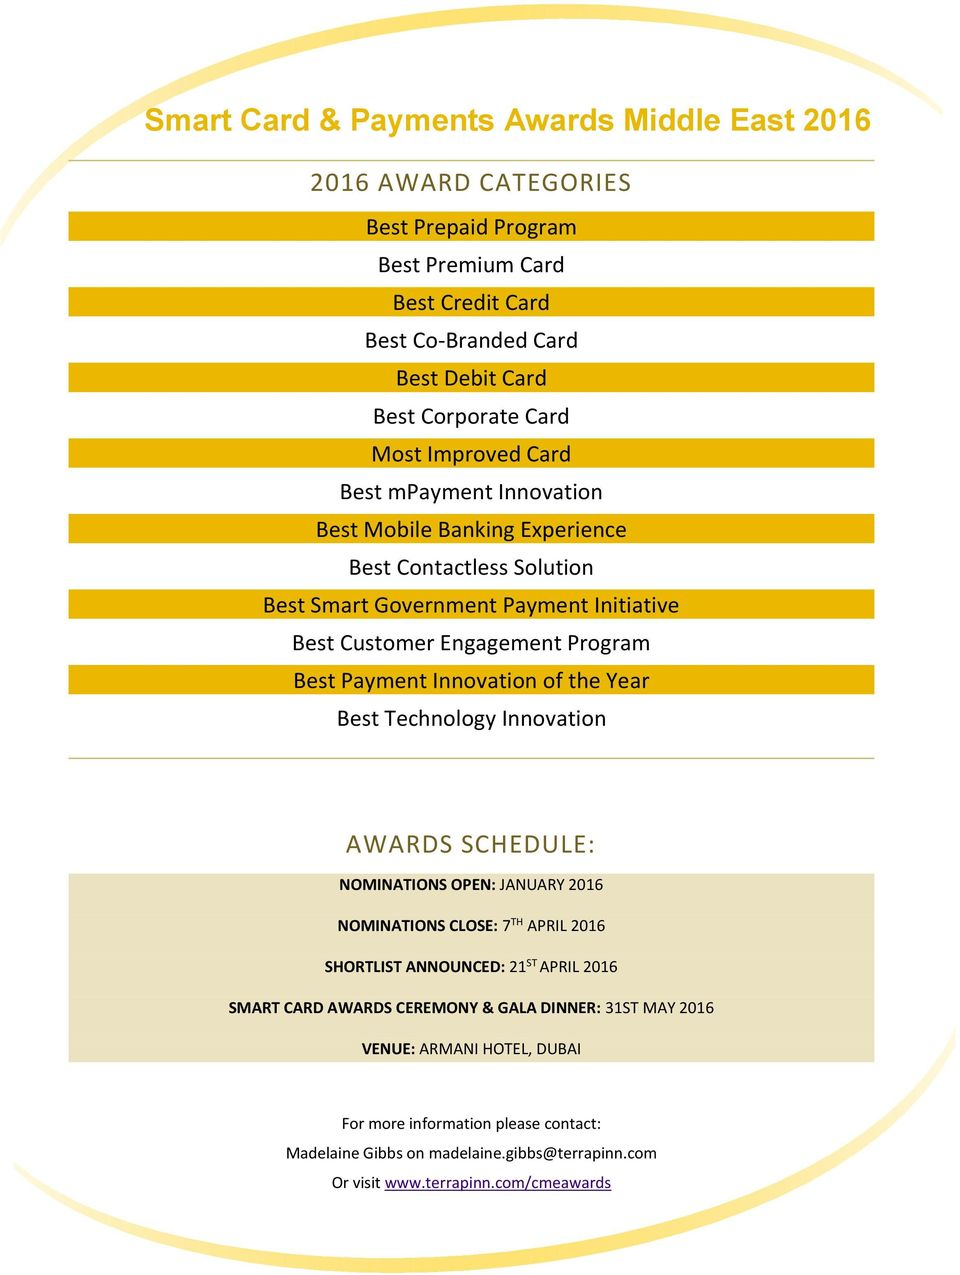 Year Best Technology Innovation AWARDS SCHEDULE: NOMINATIONS OPEN: JANUARY 2016 NOMINATIONS CLOSE: 7 TH APRIL 2016 SHORTLIST ANNOUNCED: 21 ST APRIL 2016 SMART CARD AWARDS